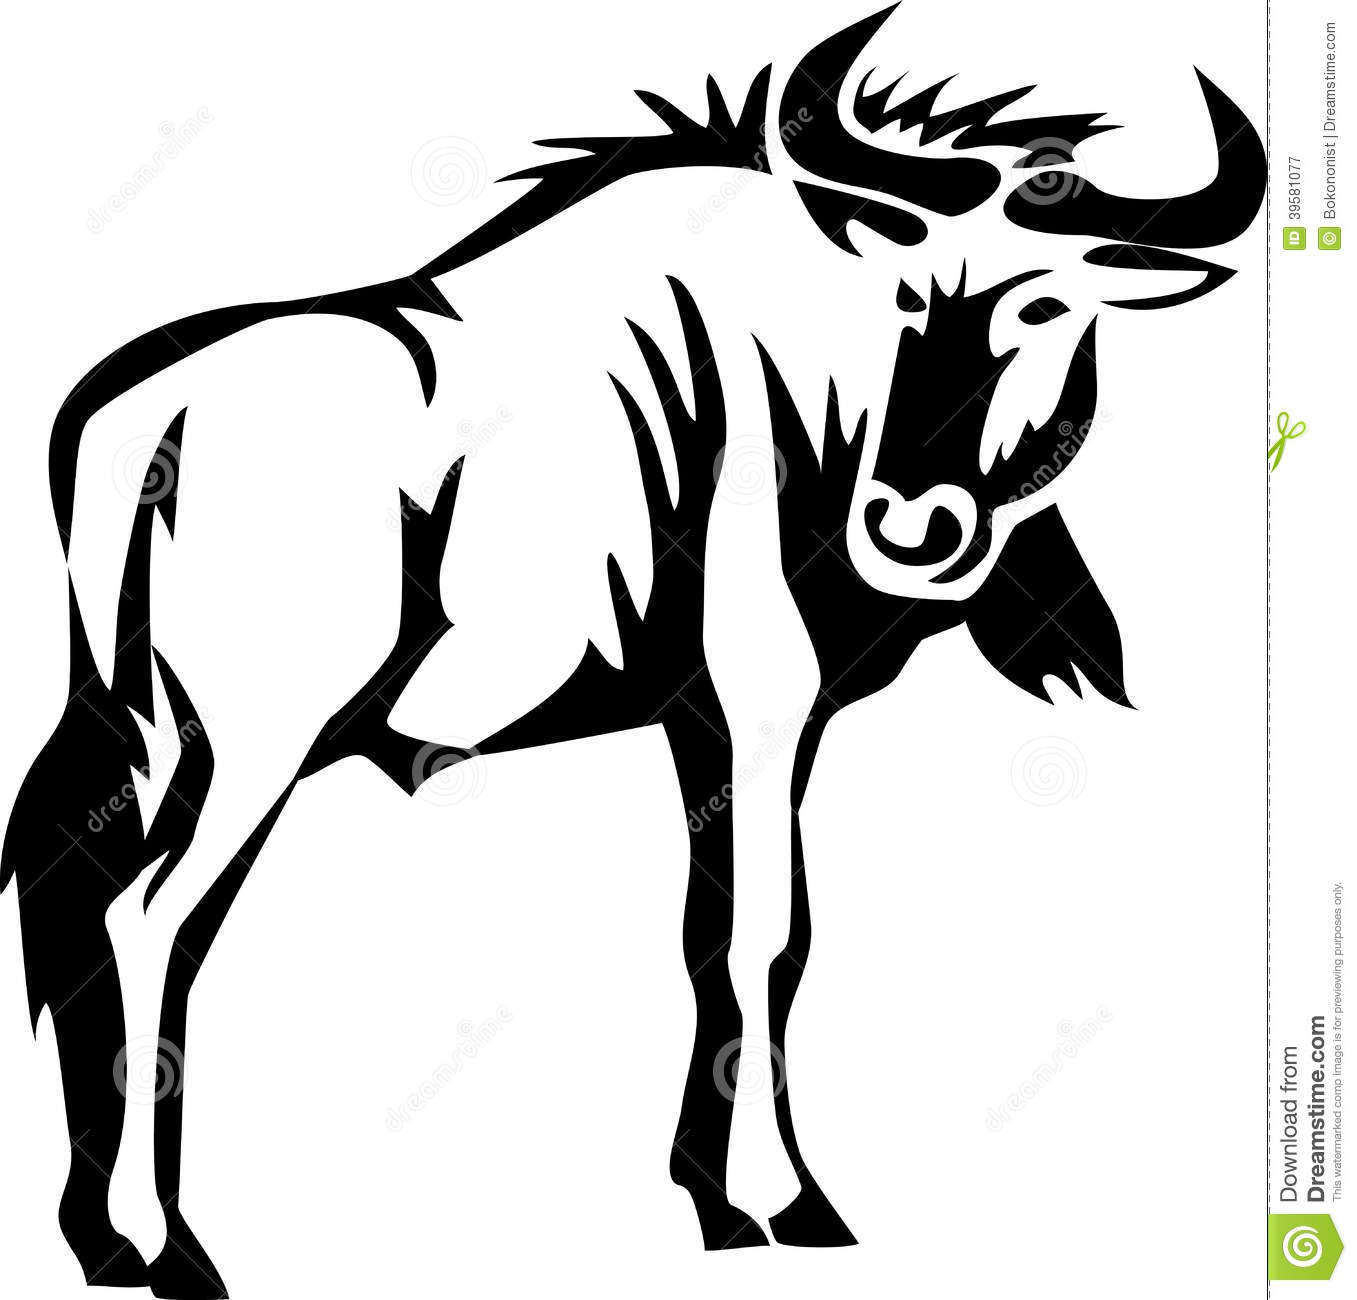 Blue Wildebeest clipart #18, Download drawings